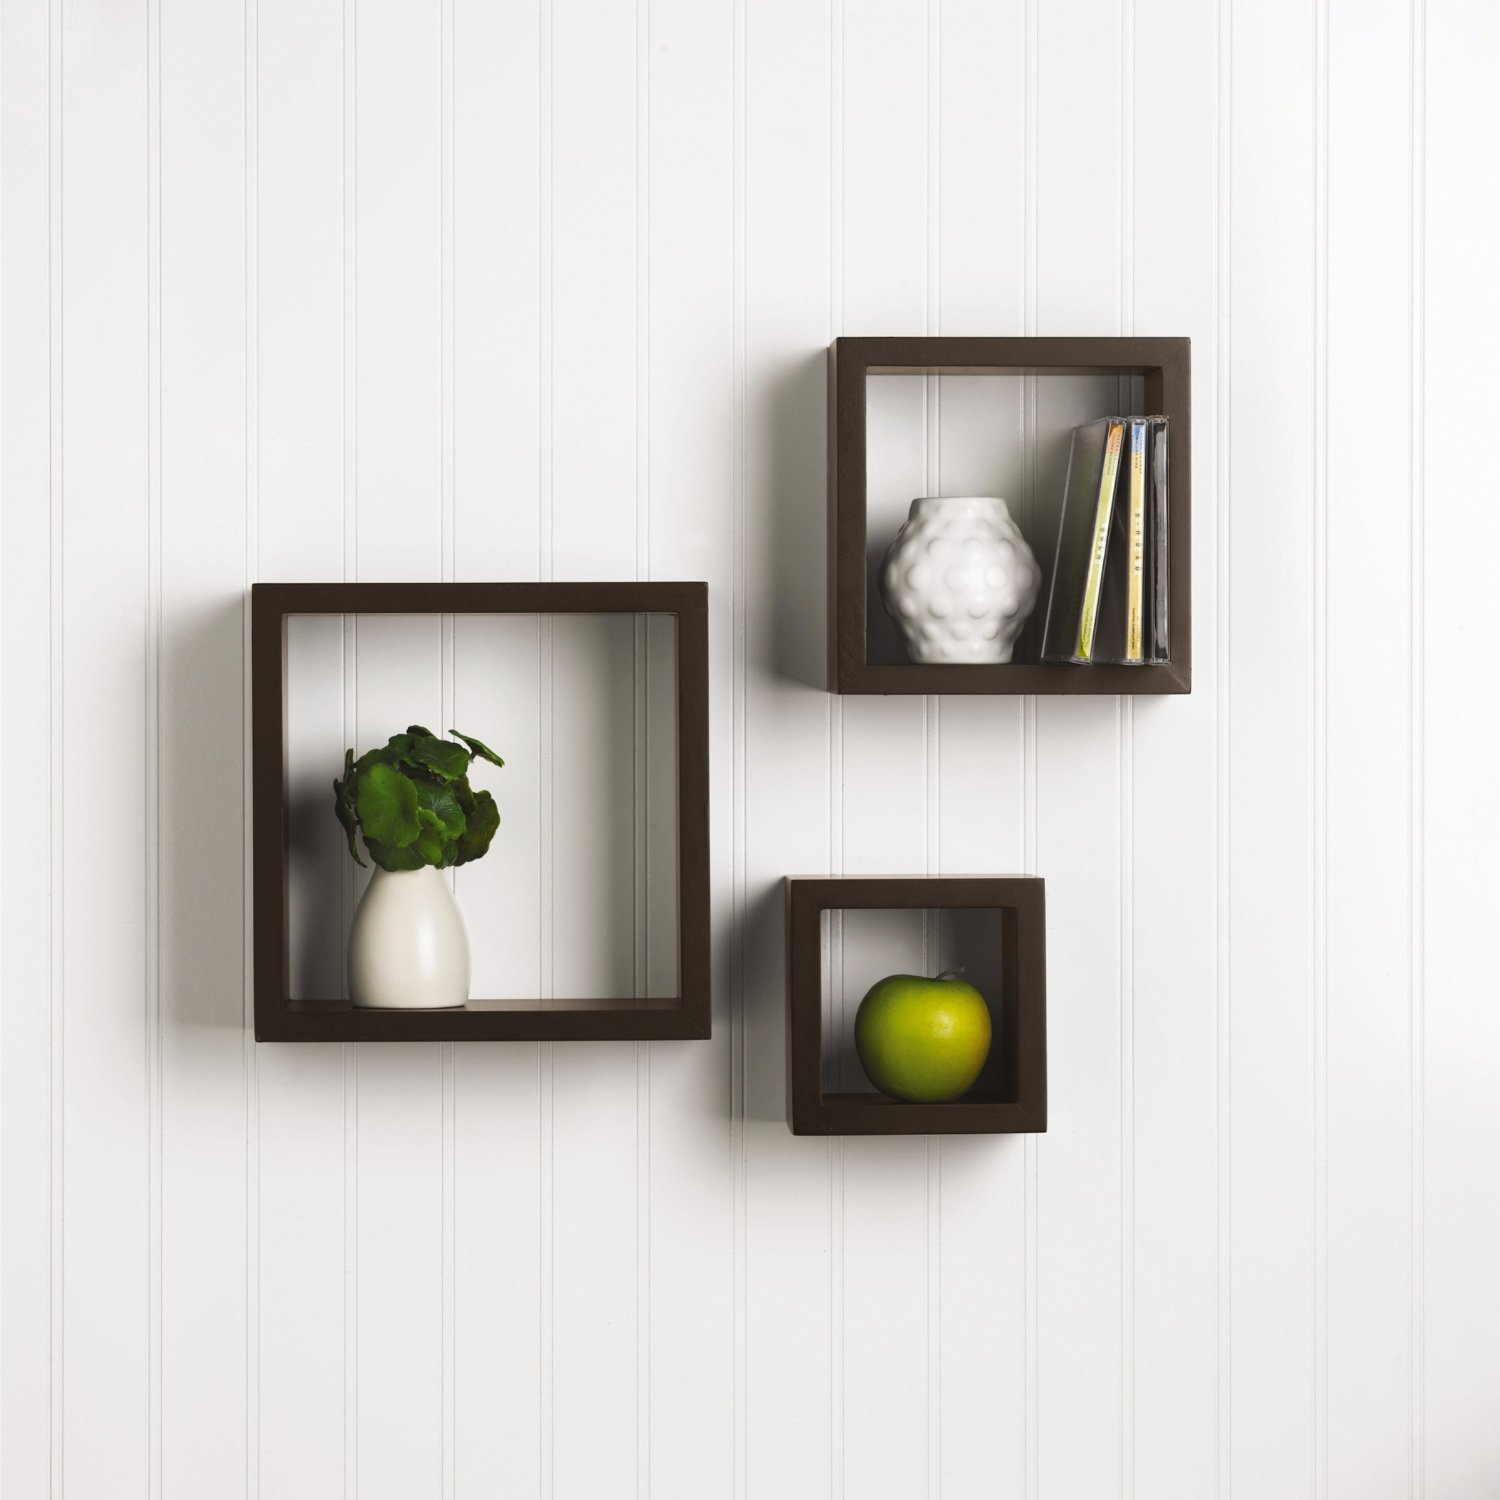 Fullsize Of Floating Square Shelves